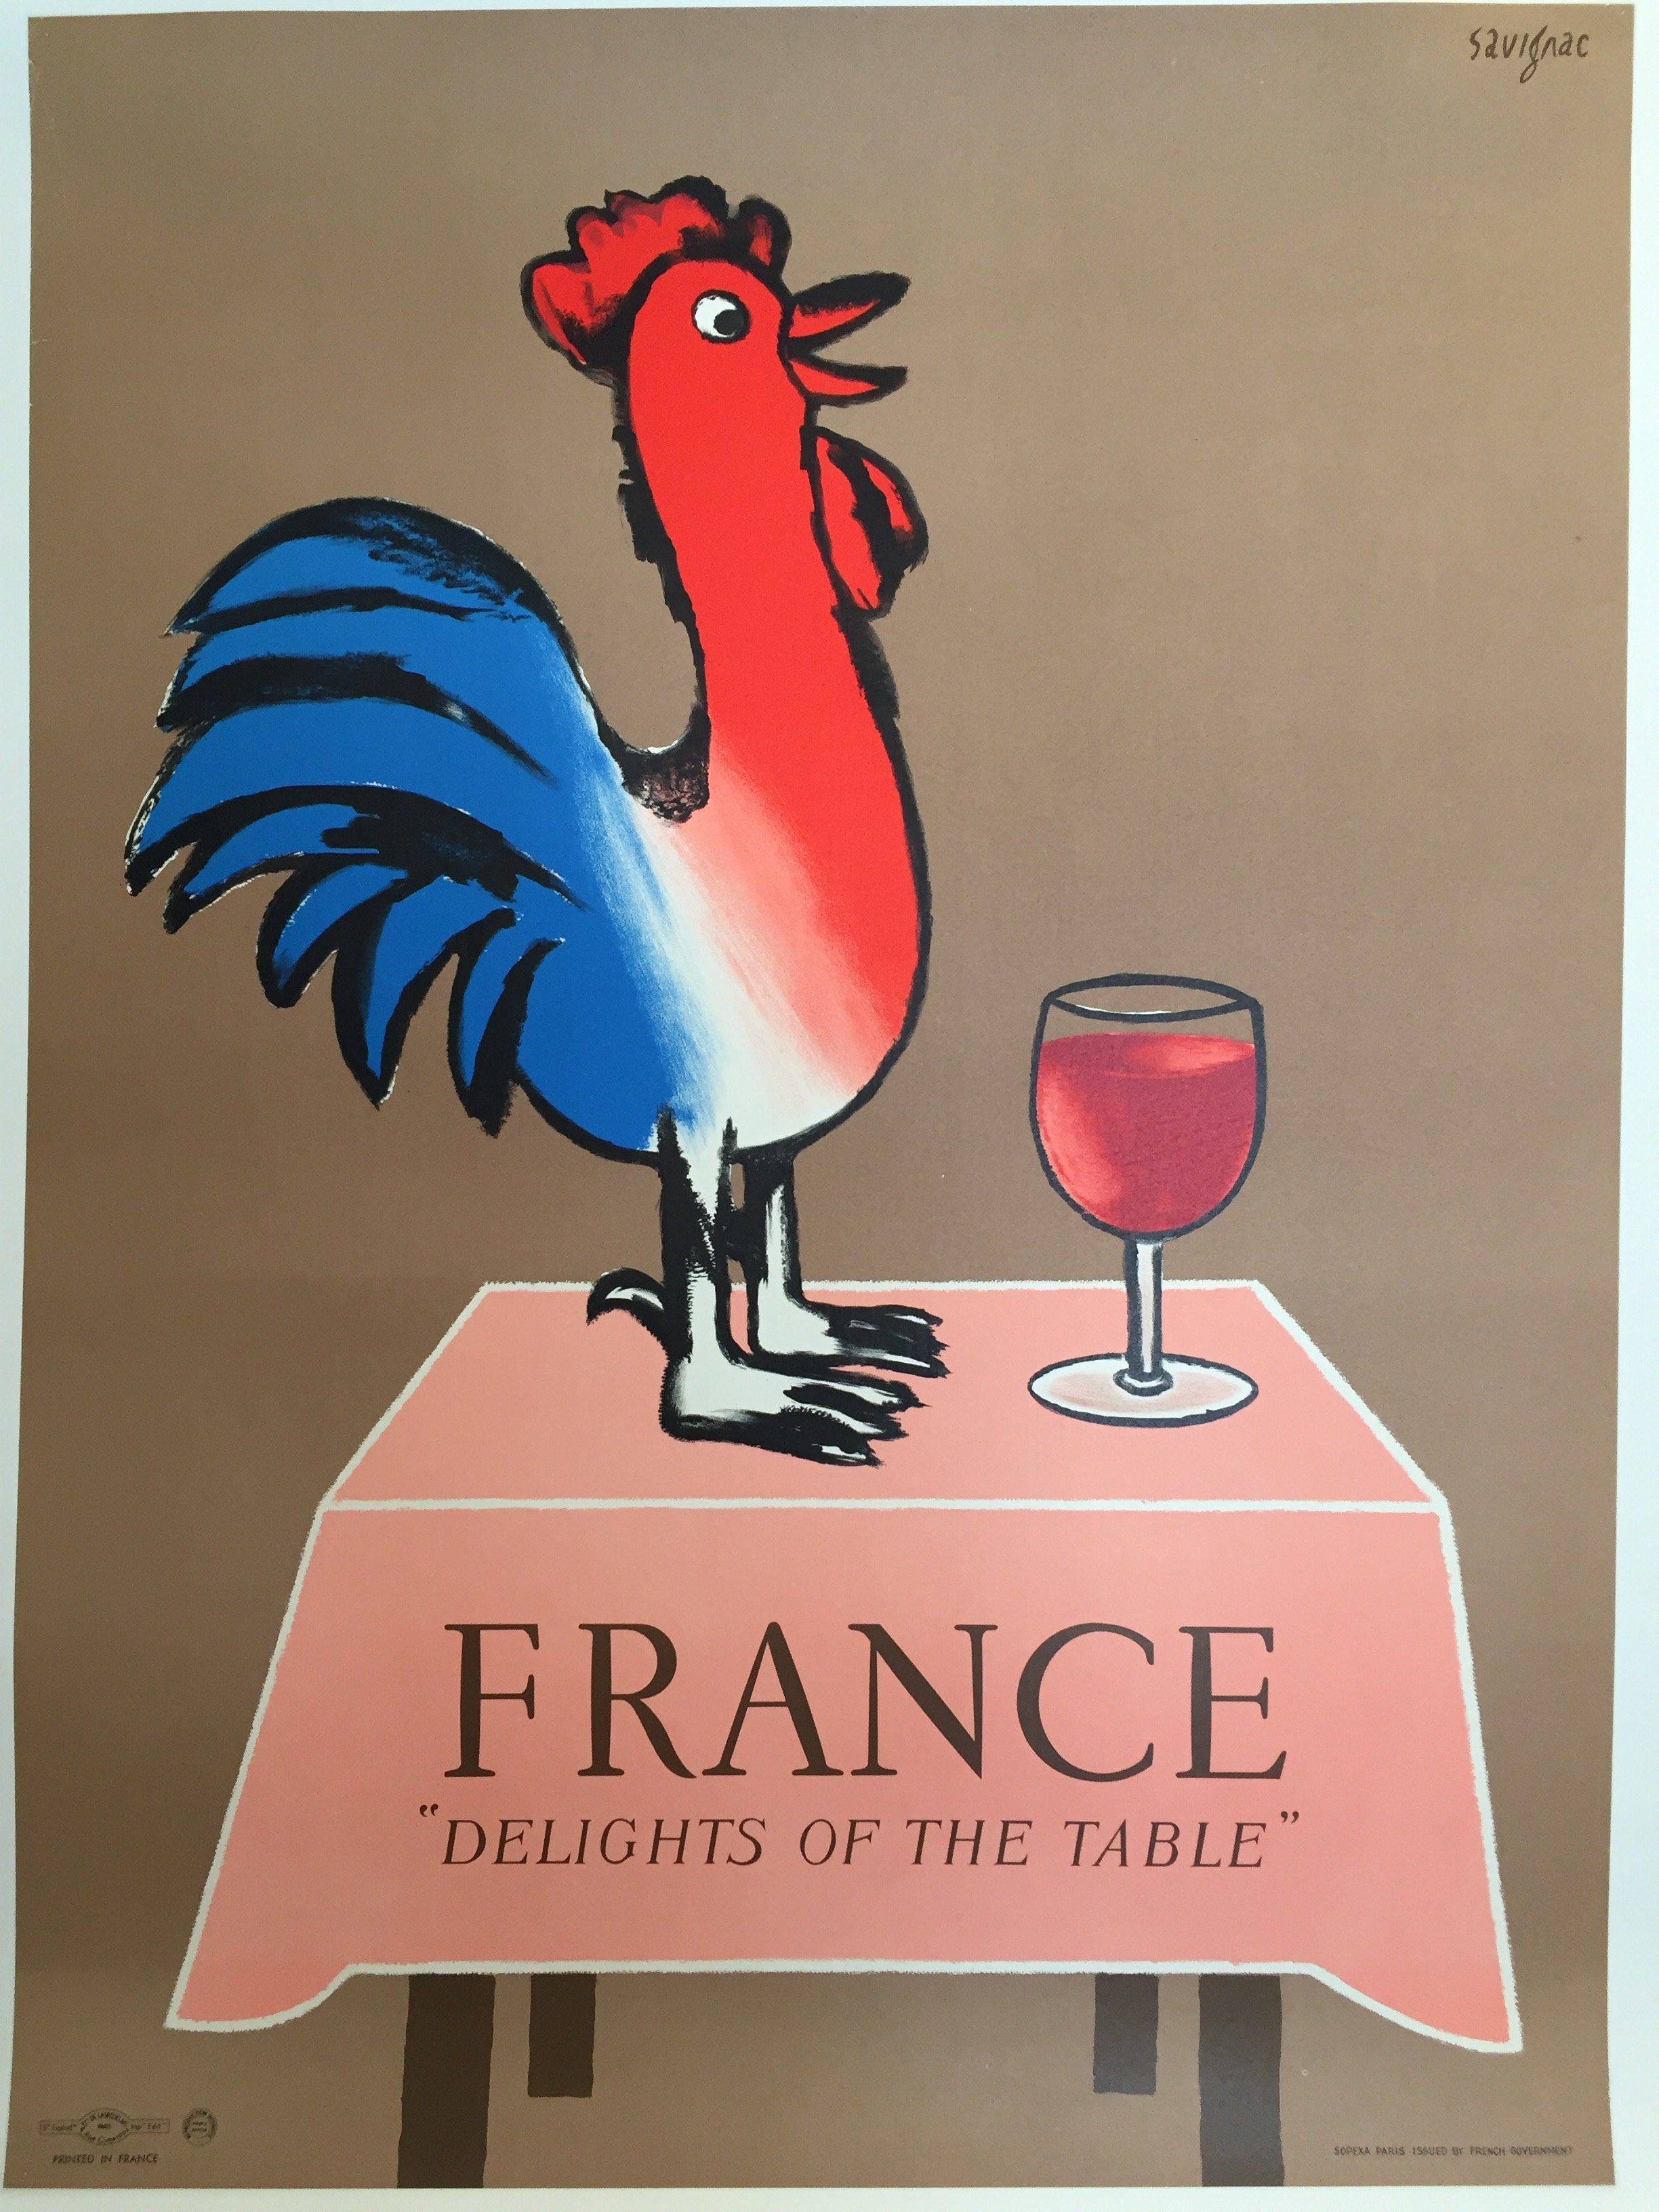 Savignac Delights of France original vintage poster